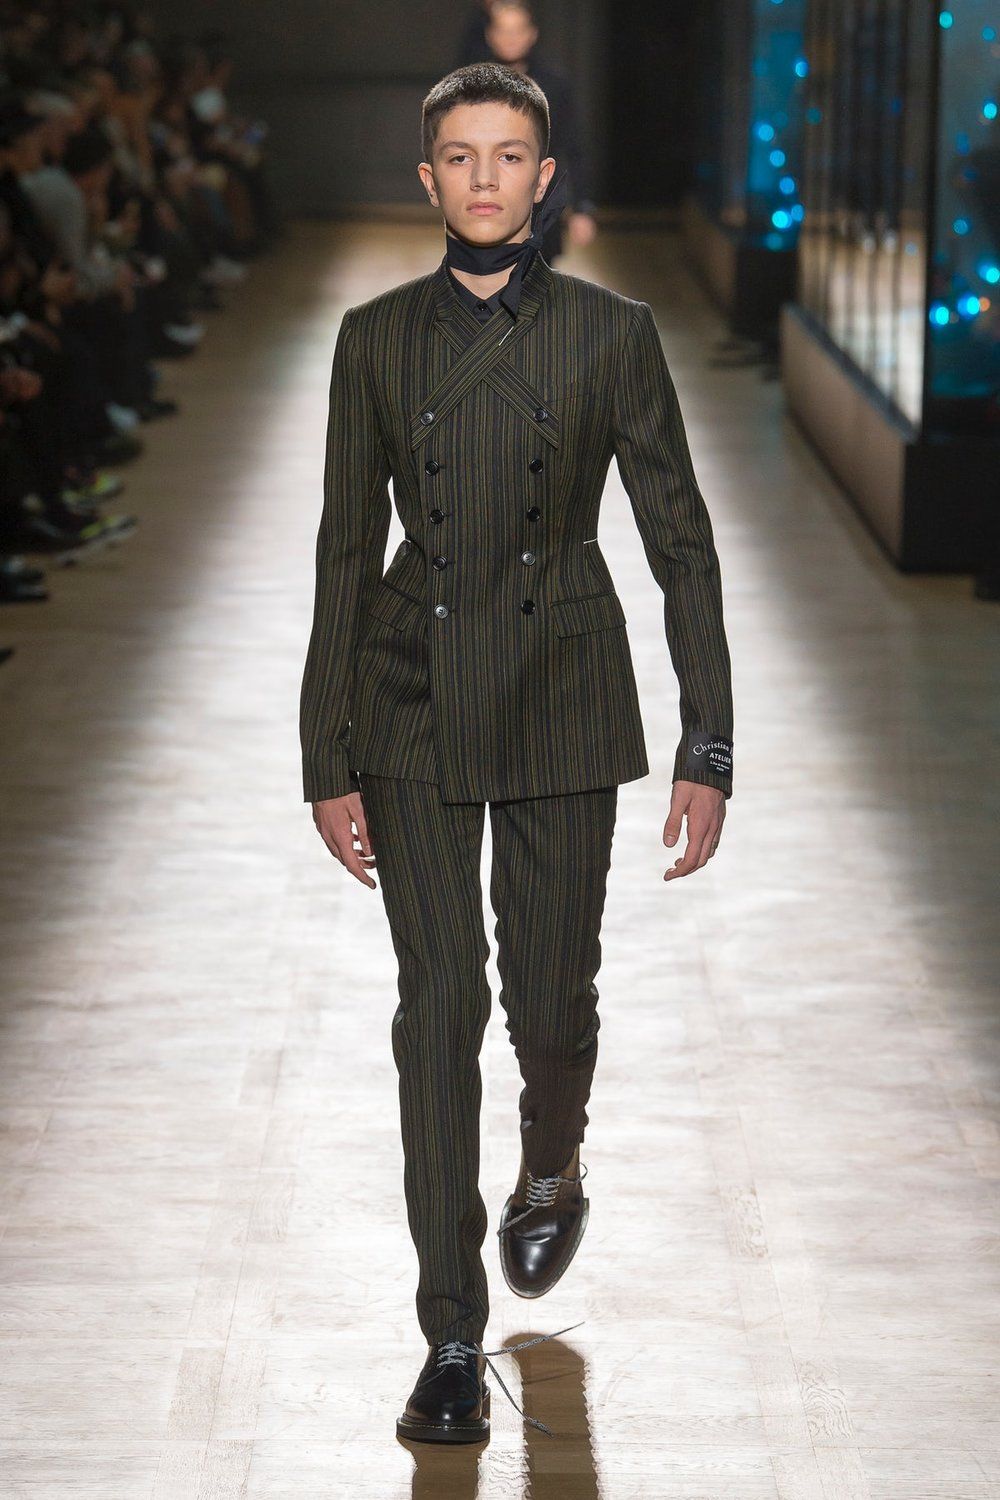 dior_homme_look_42_menswear_autumn_2018.jpeg